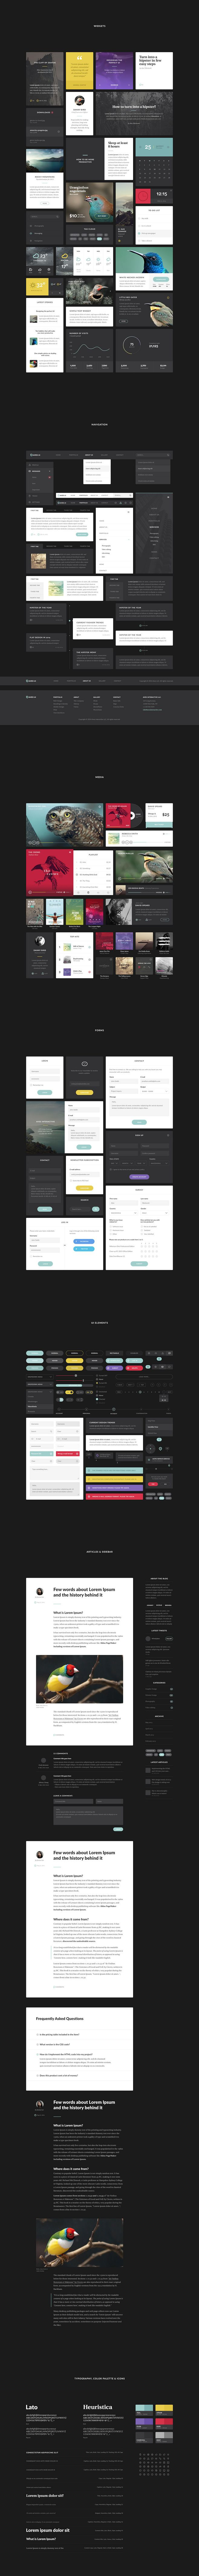 Aves-ui-all-elements... more on http://html5themes.org